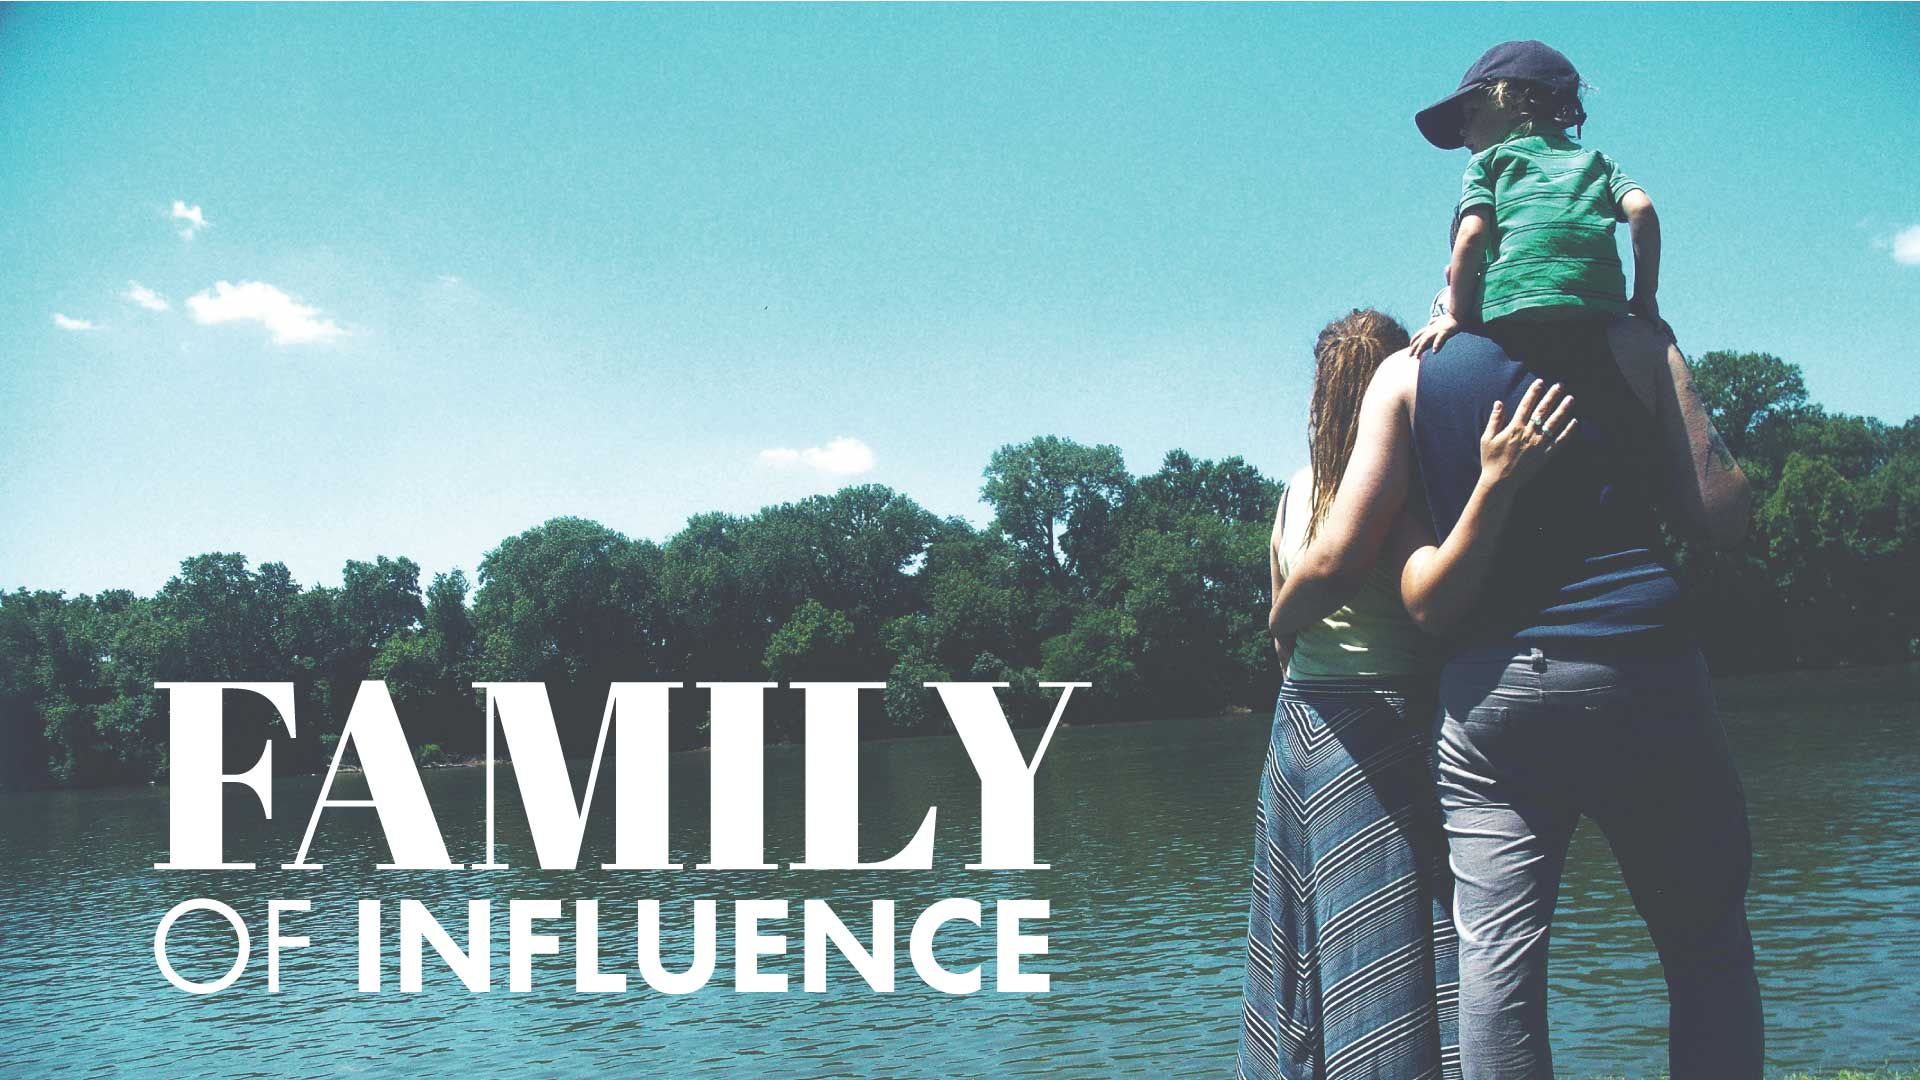 Family-of-Influence-1920x1080